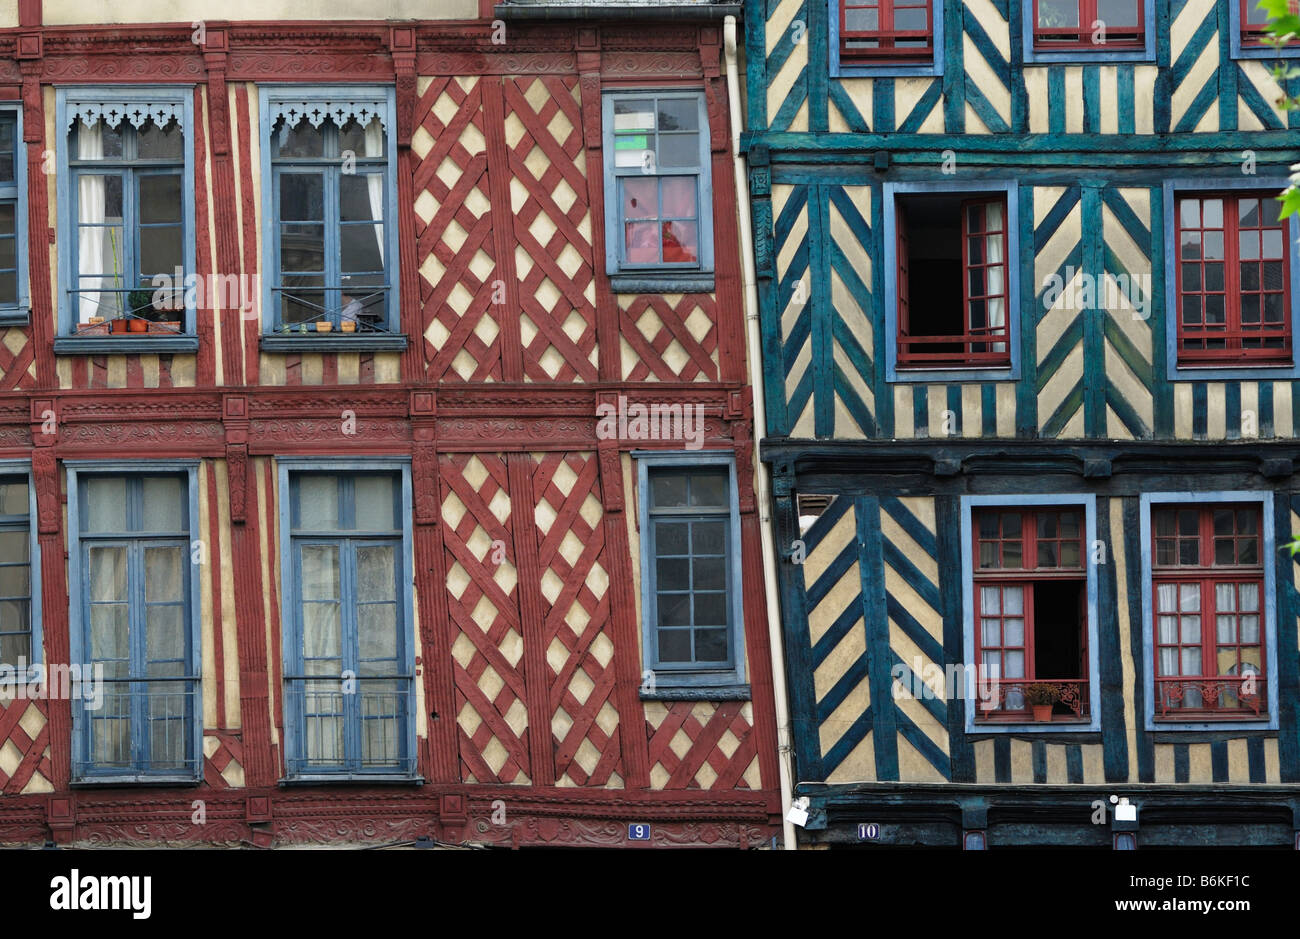 Rennes Brittany France Colourful medieval half timbered buildings on Place Sainte Anne - Stock Image